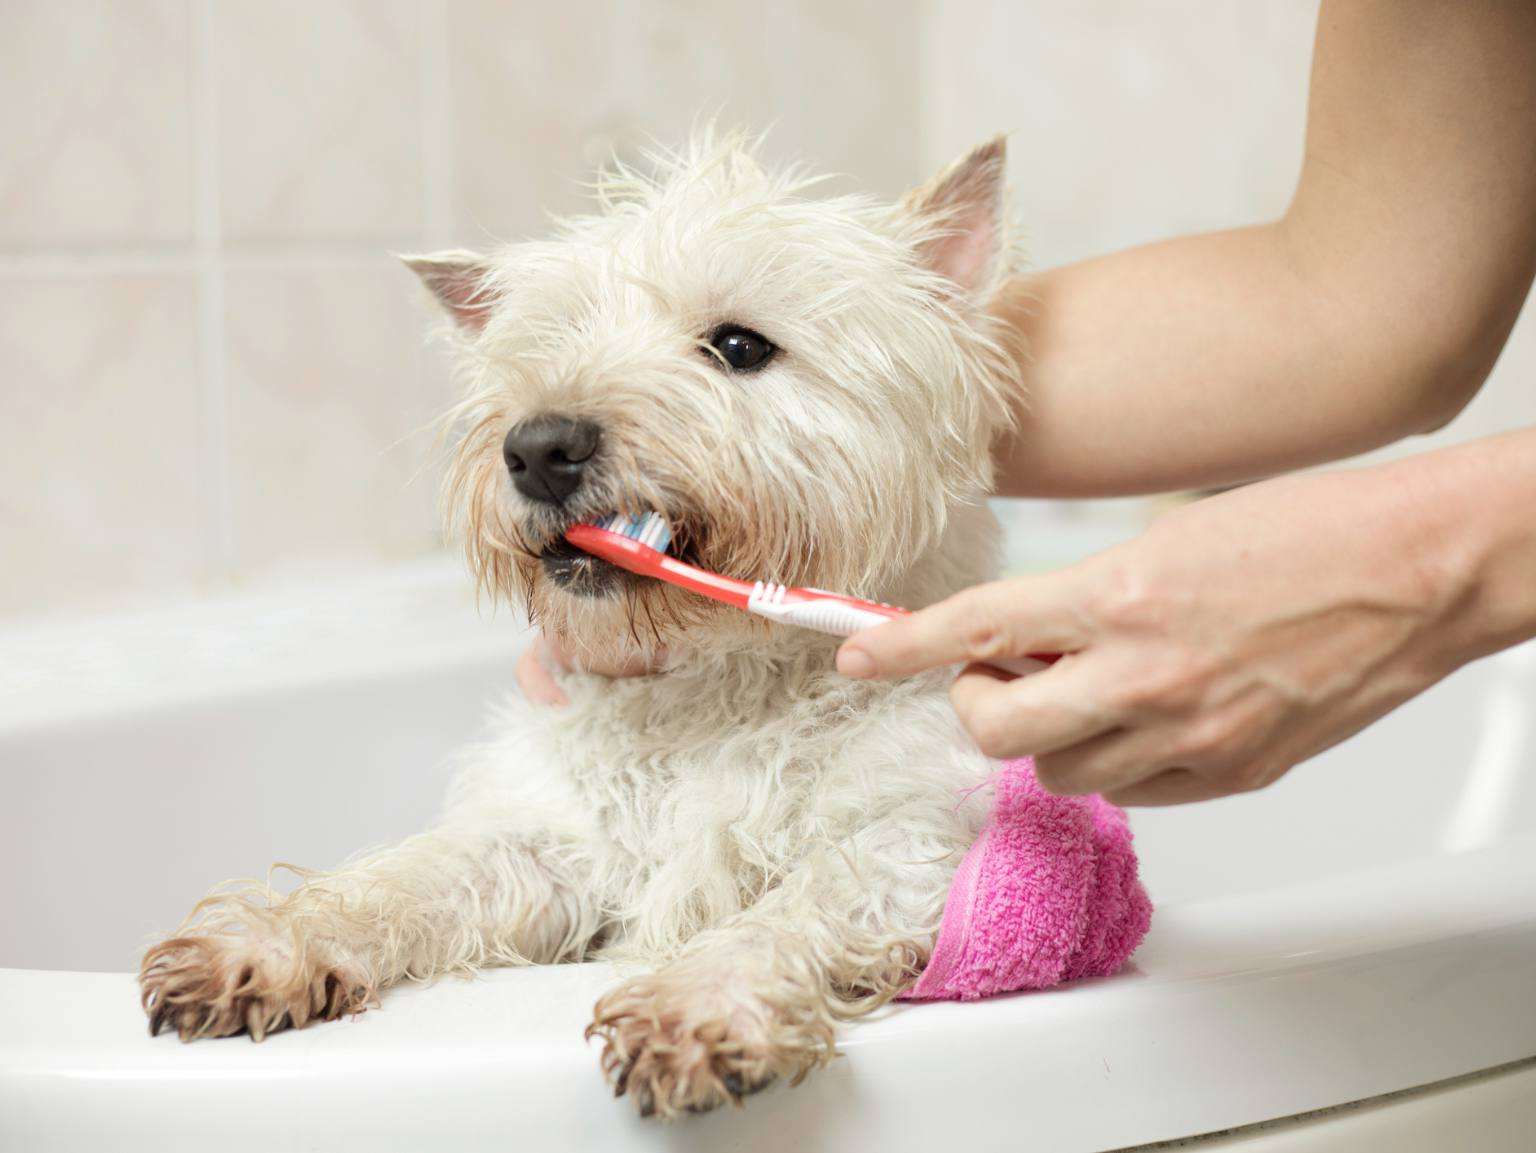 A West Highland Terrier getting its teeth brushed in a bathtub